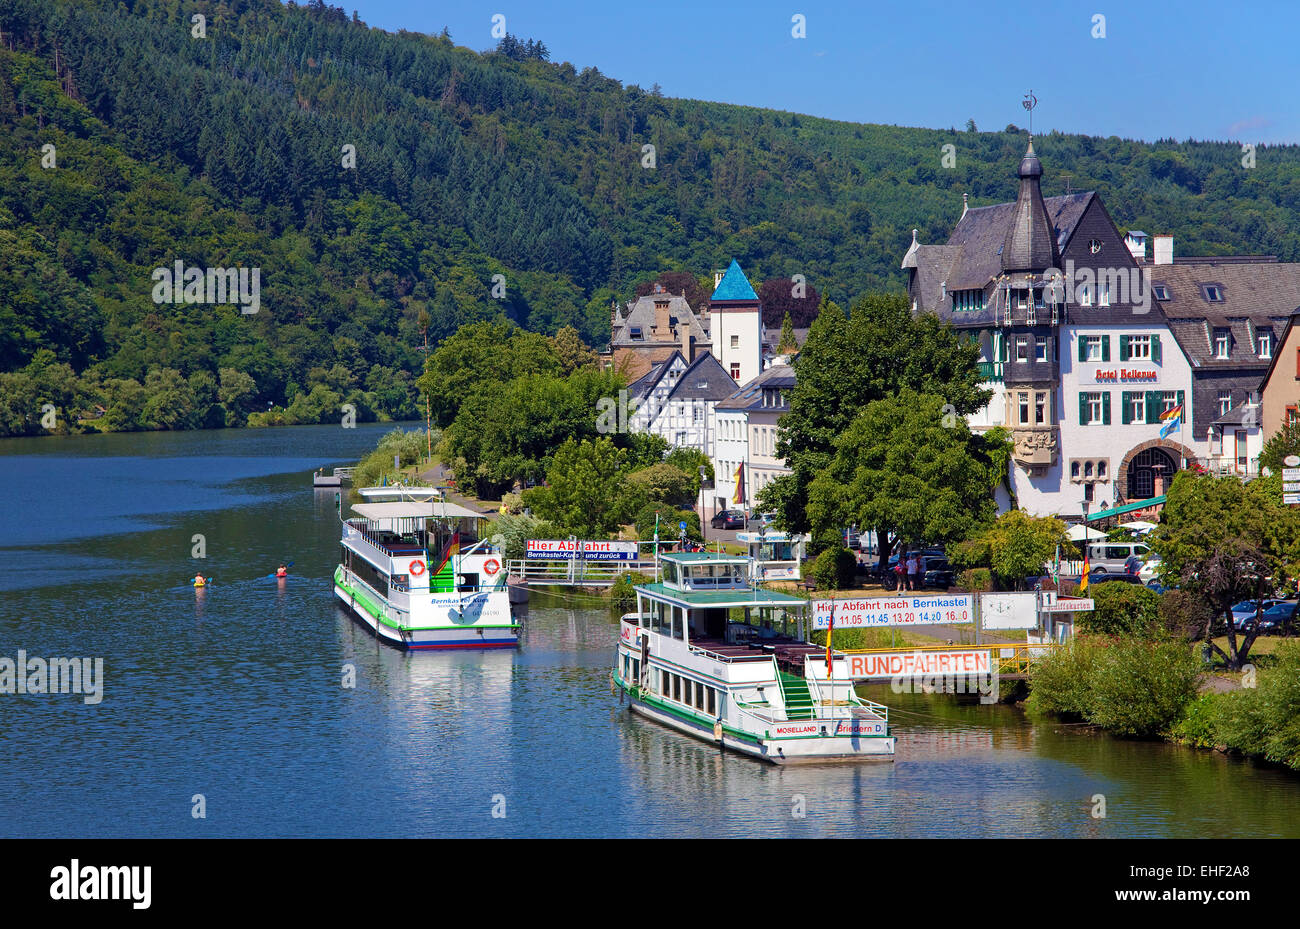 Moselufer stockfotos moselufer bilder alamy for Designhotel rheinland pfalz